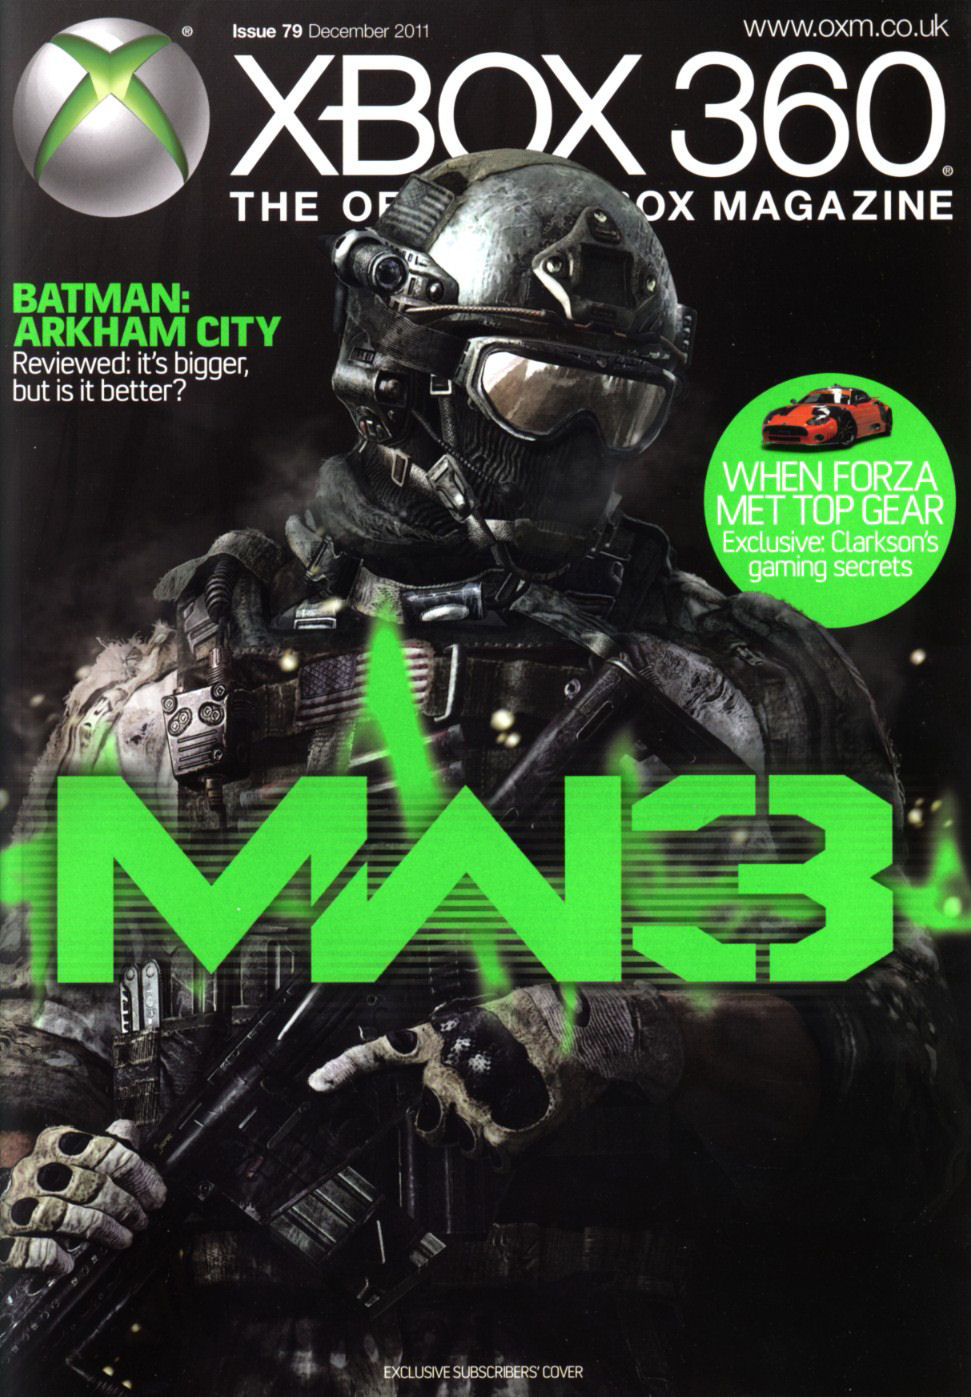 Official Xbox Magazine Issue 171 Christmas 2020 Xbox 360: The Official Xbox Magazine Issue 79 | Magazines from the